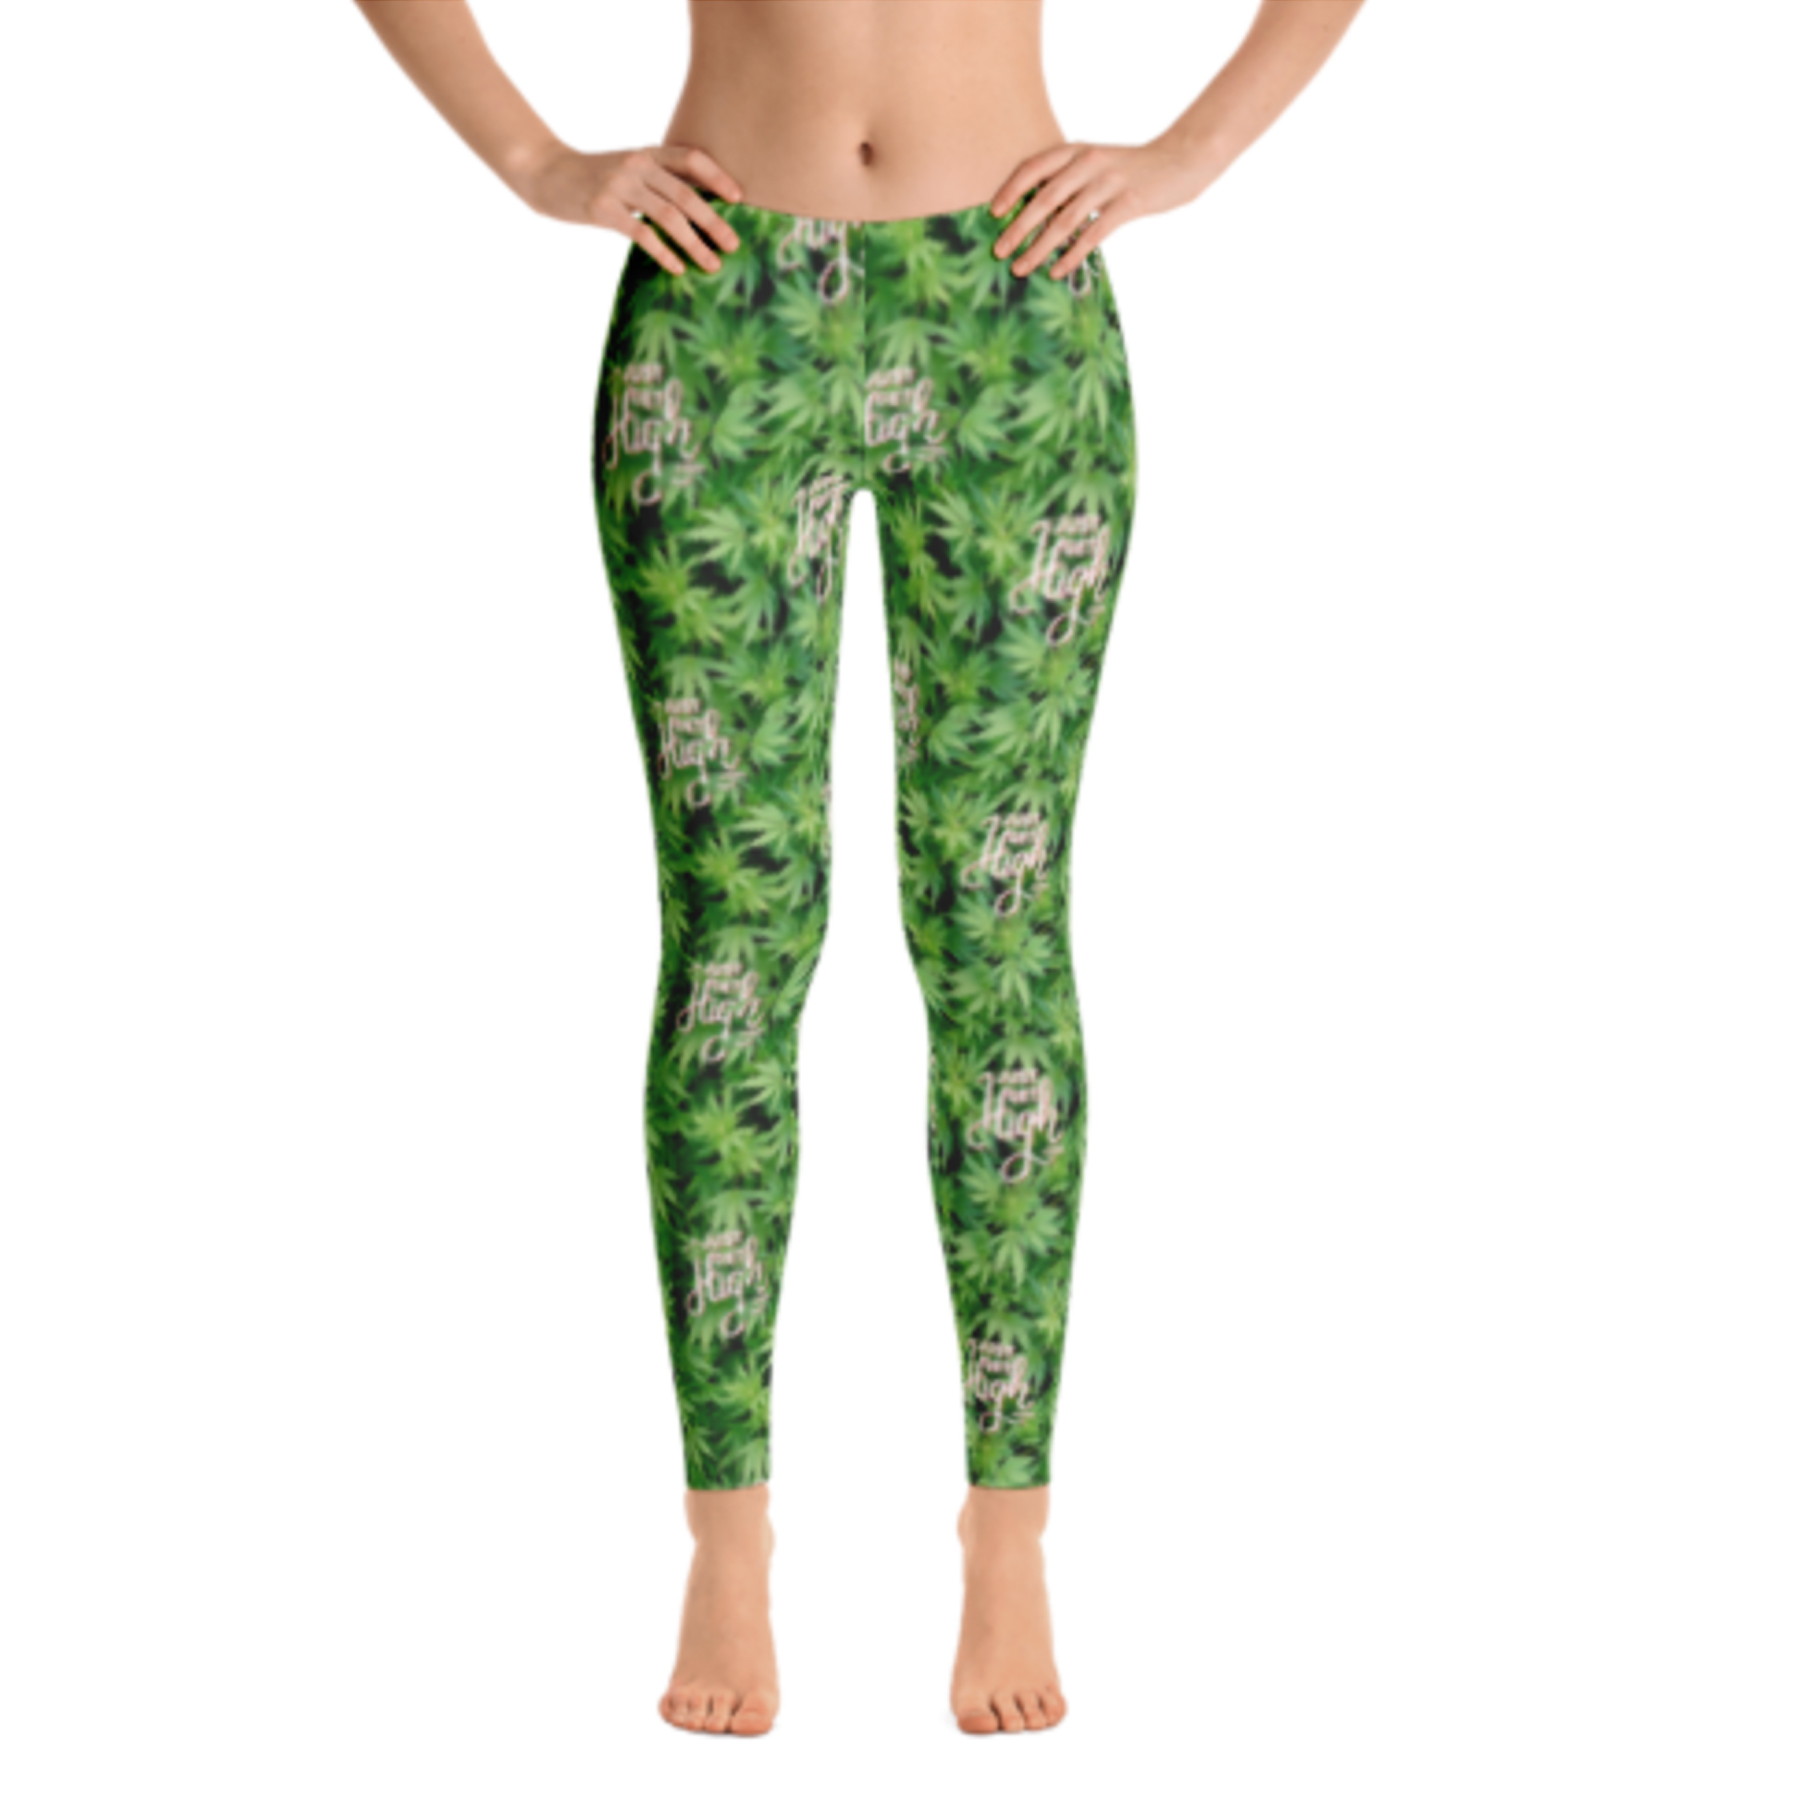 JUST GET HIGH_LOGO BAREFOOT_LEGGING